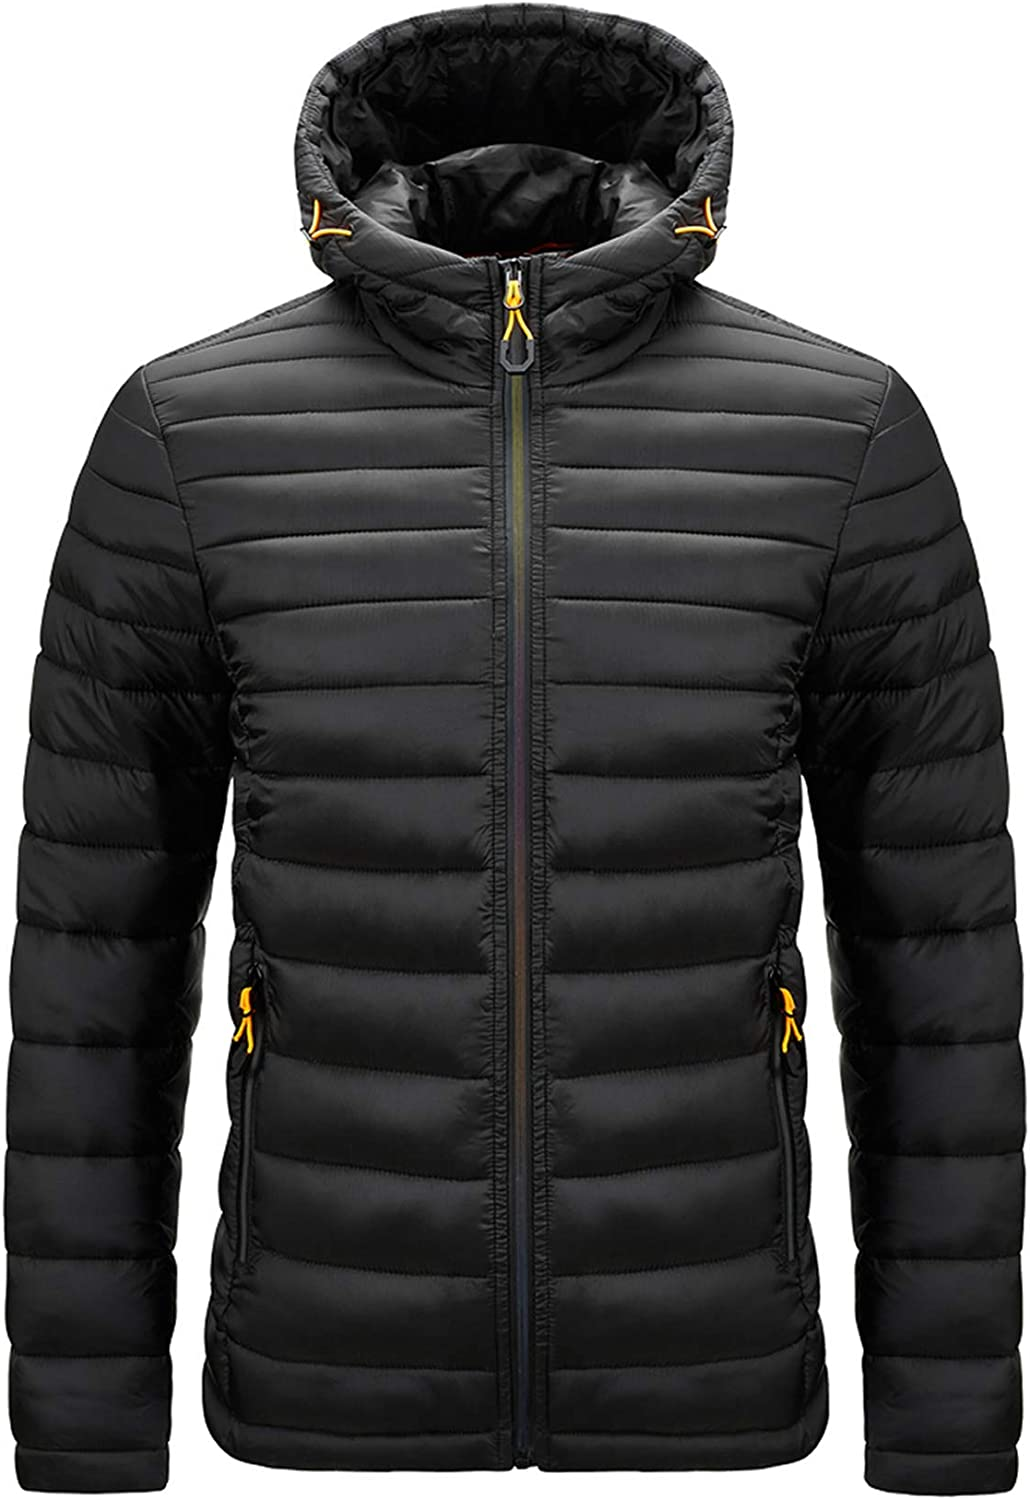 Vcansion Women's Lightweight Hooded Puffer Jacket Winter Quilted Padding Coat